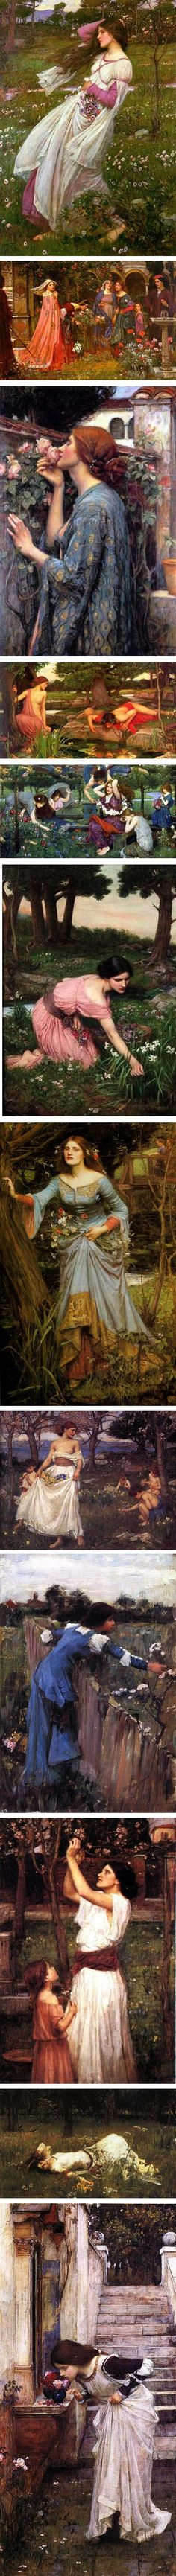 Welcoming Spring with John William Waterhouse